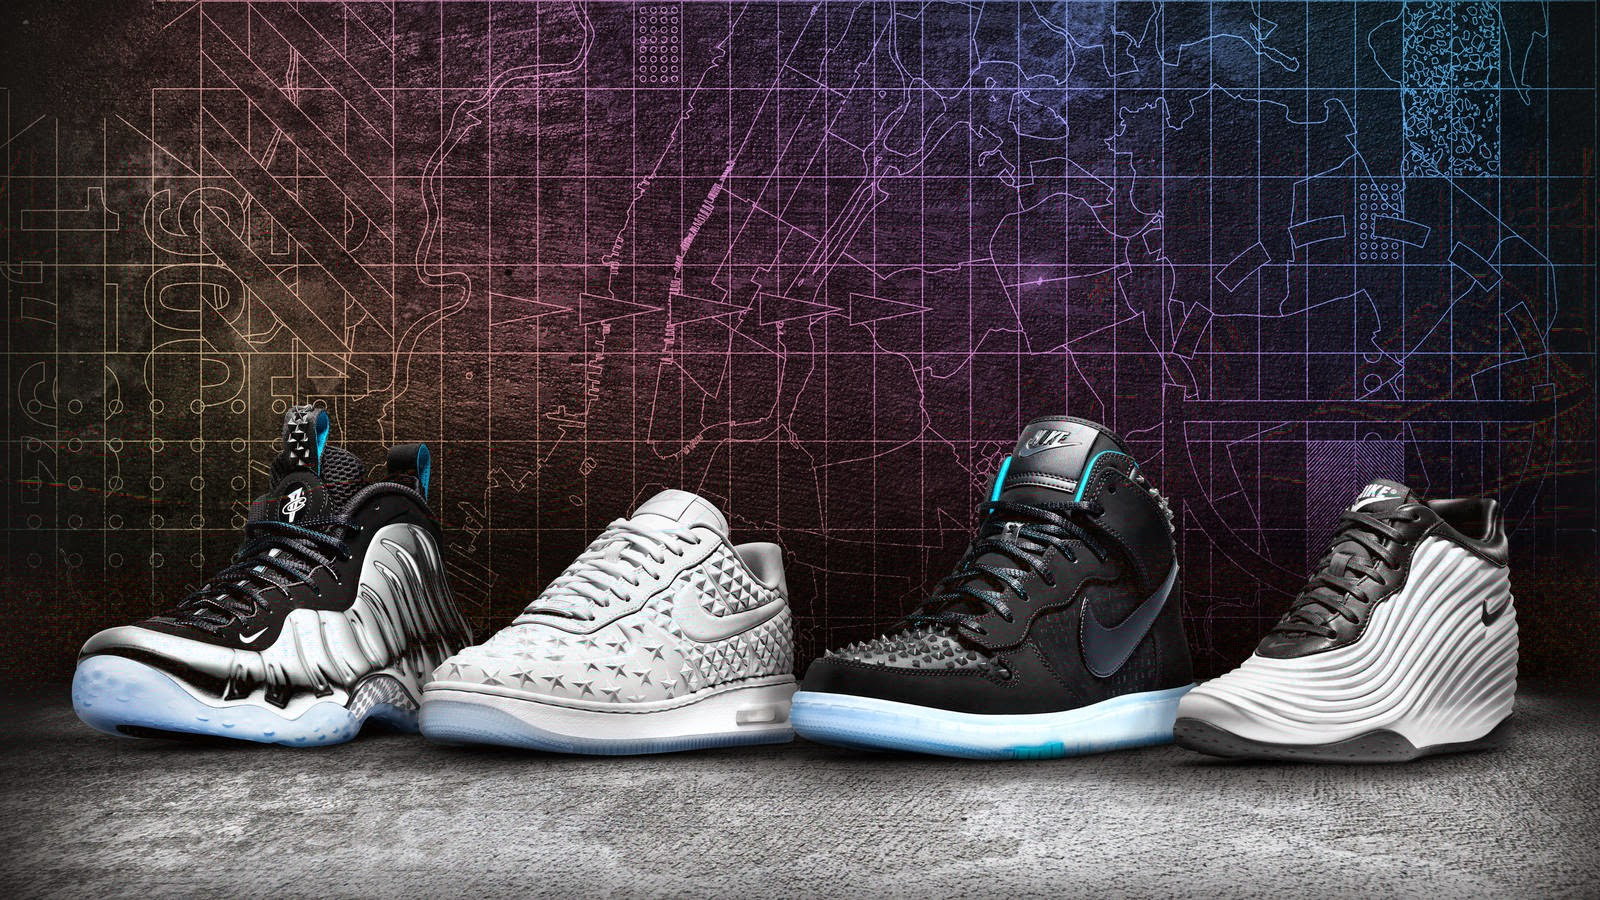 finest selection 2cb27 9dfa0 The NBA All-Star Weekend Pack is usually what everybody is waiting for.  This year, Jordan Brand options are okay, but we expected more since it is  the 30 ...